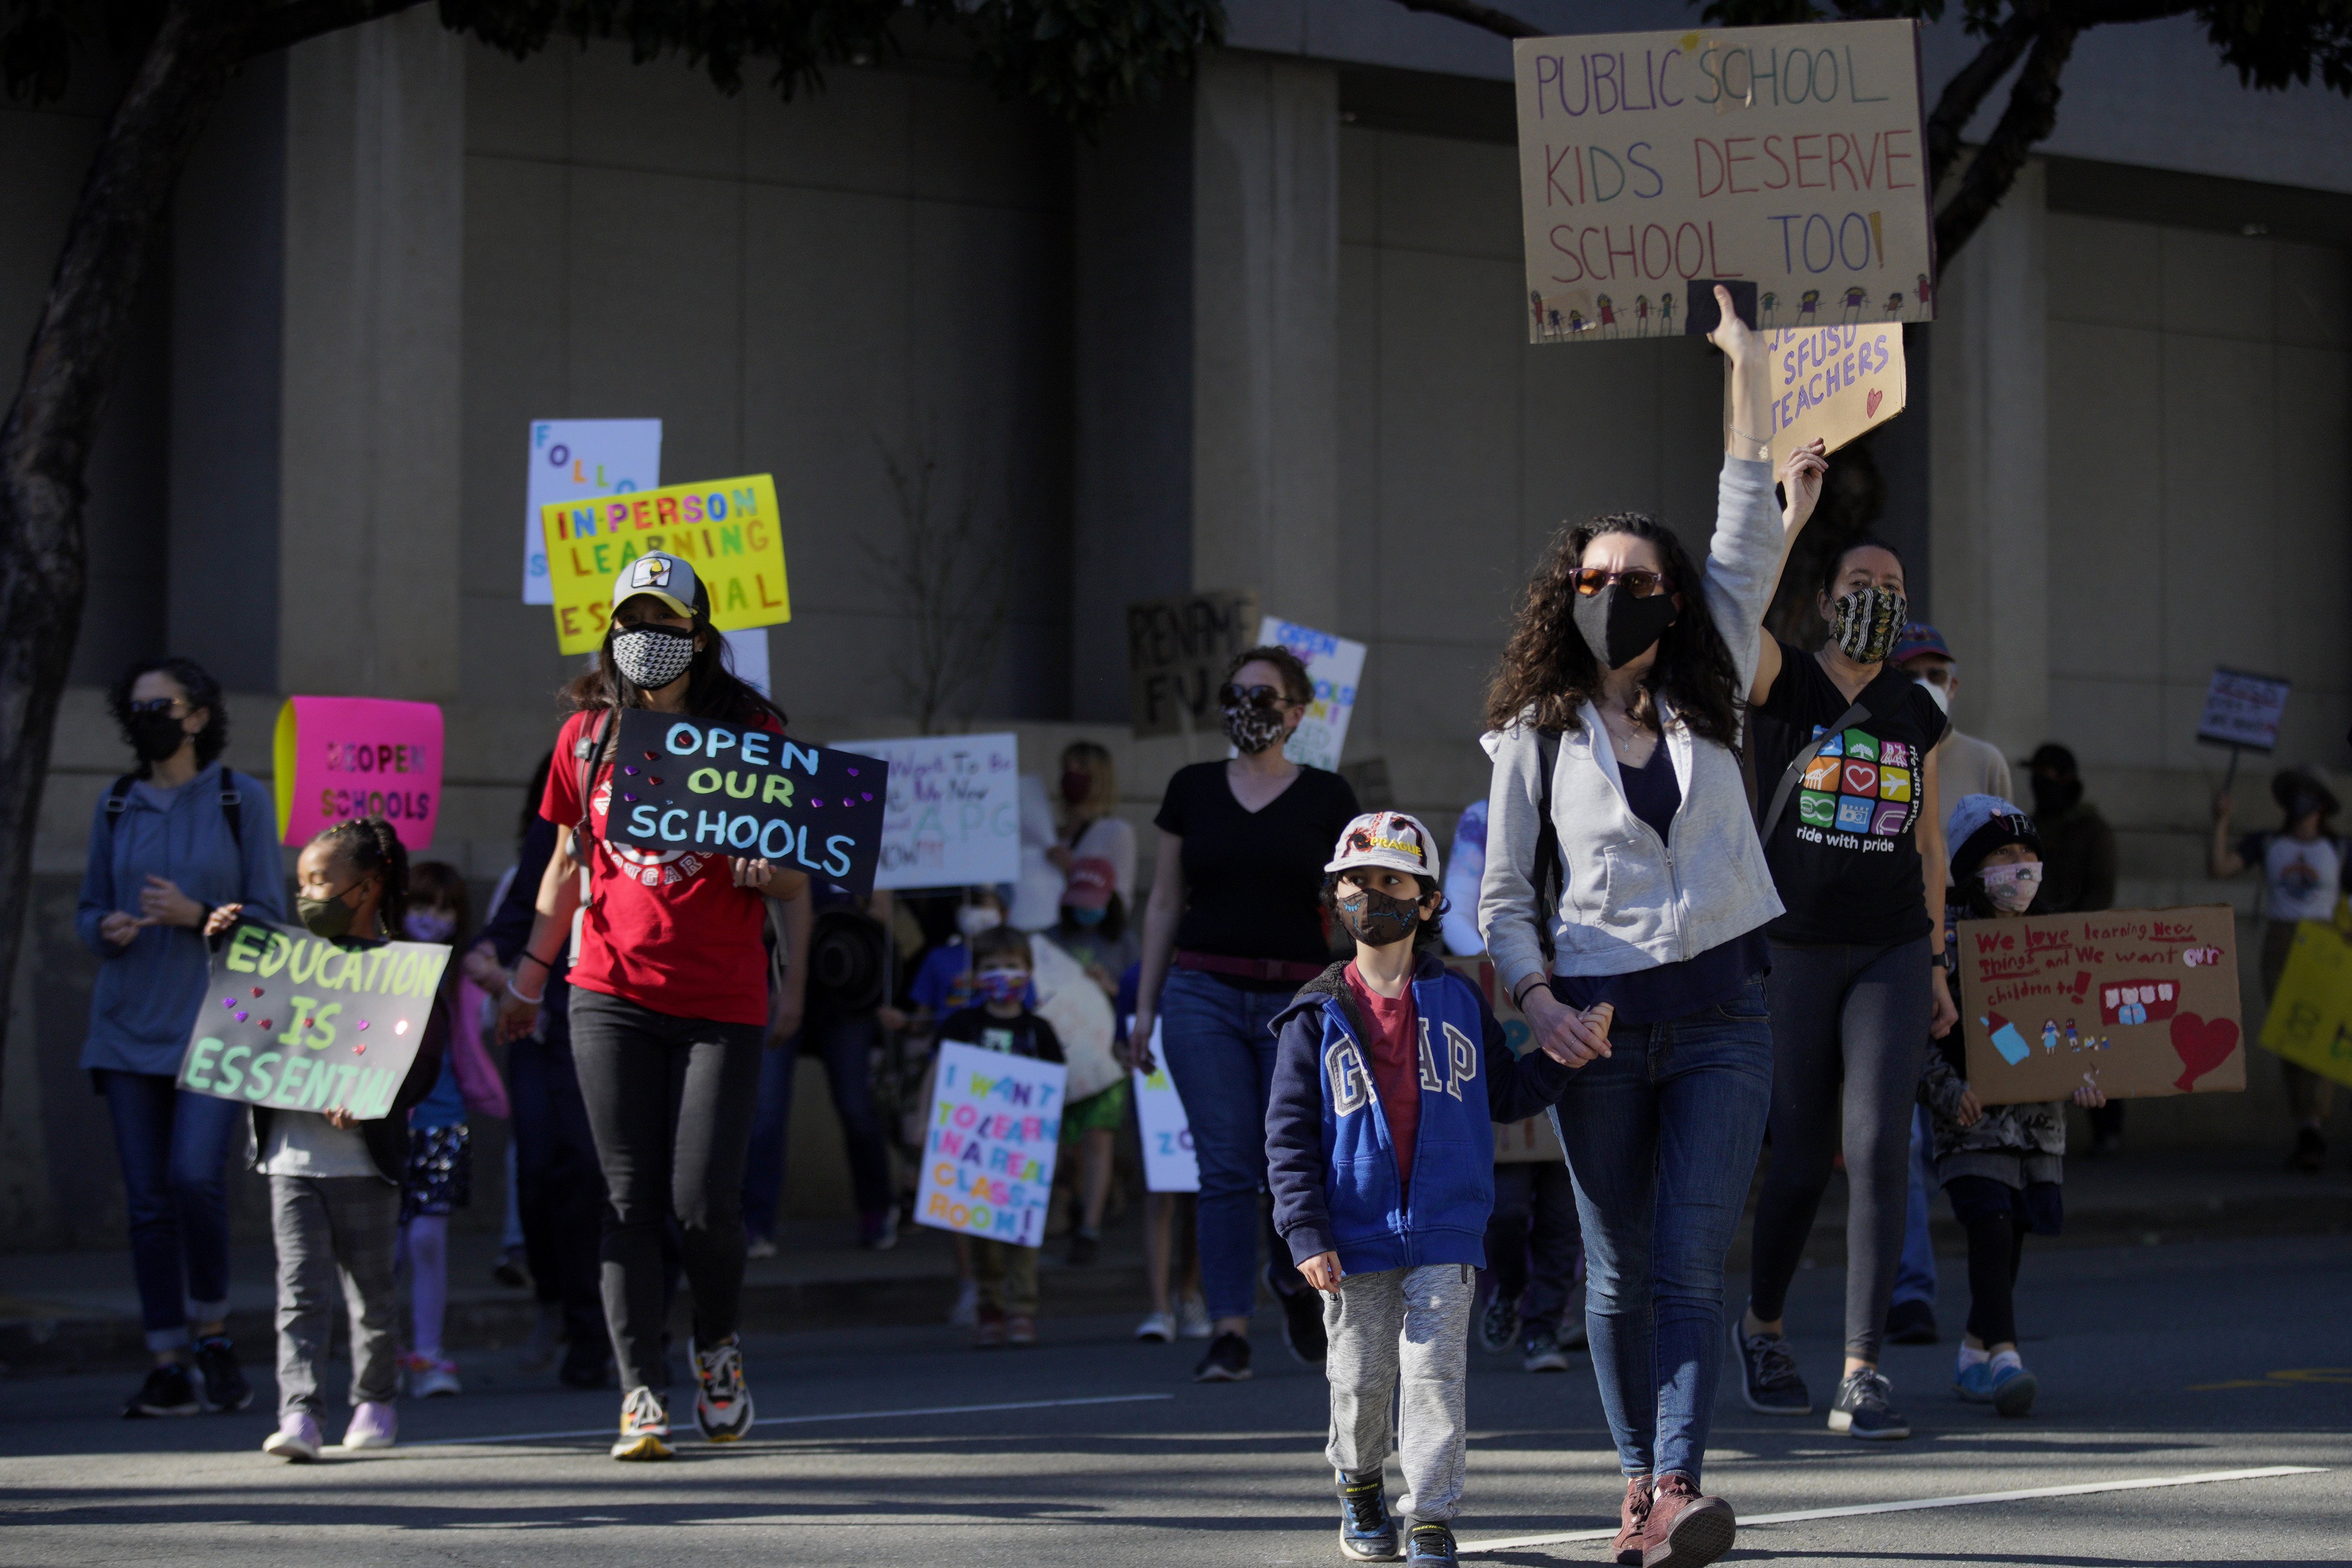 Hundreds of people march to City Hall in San Francisco, California, on February 6, to protest against remote learning and demand schools reopen in-person education.